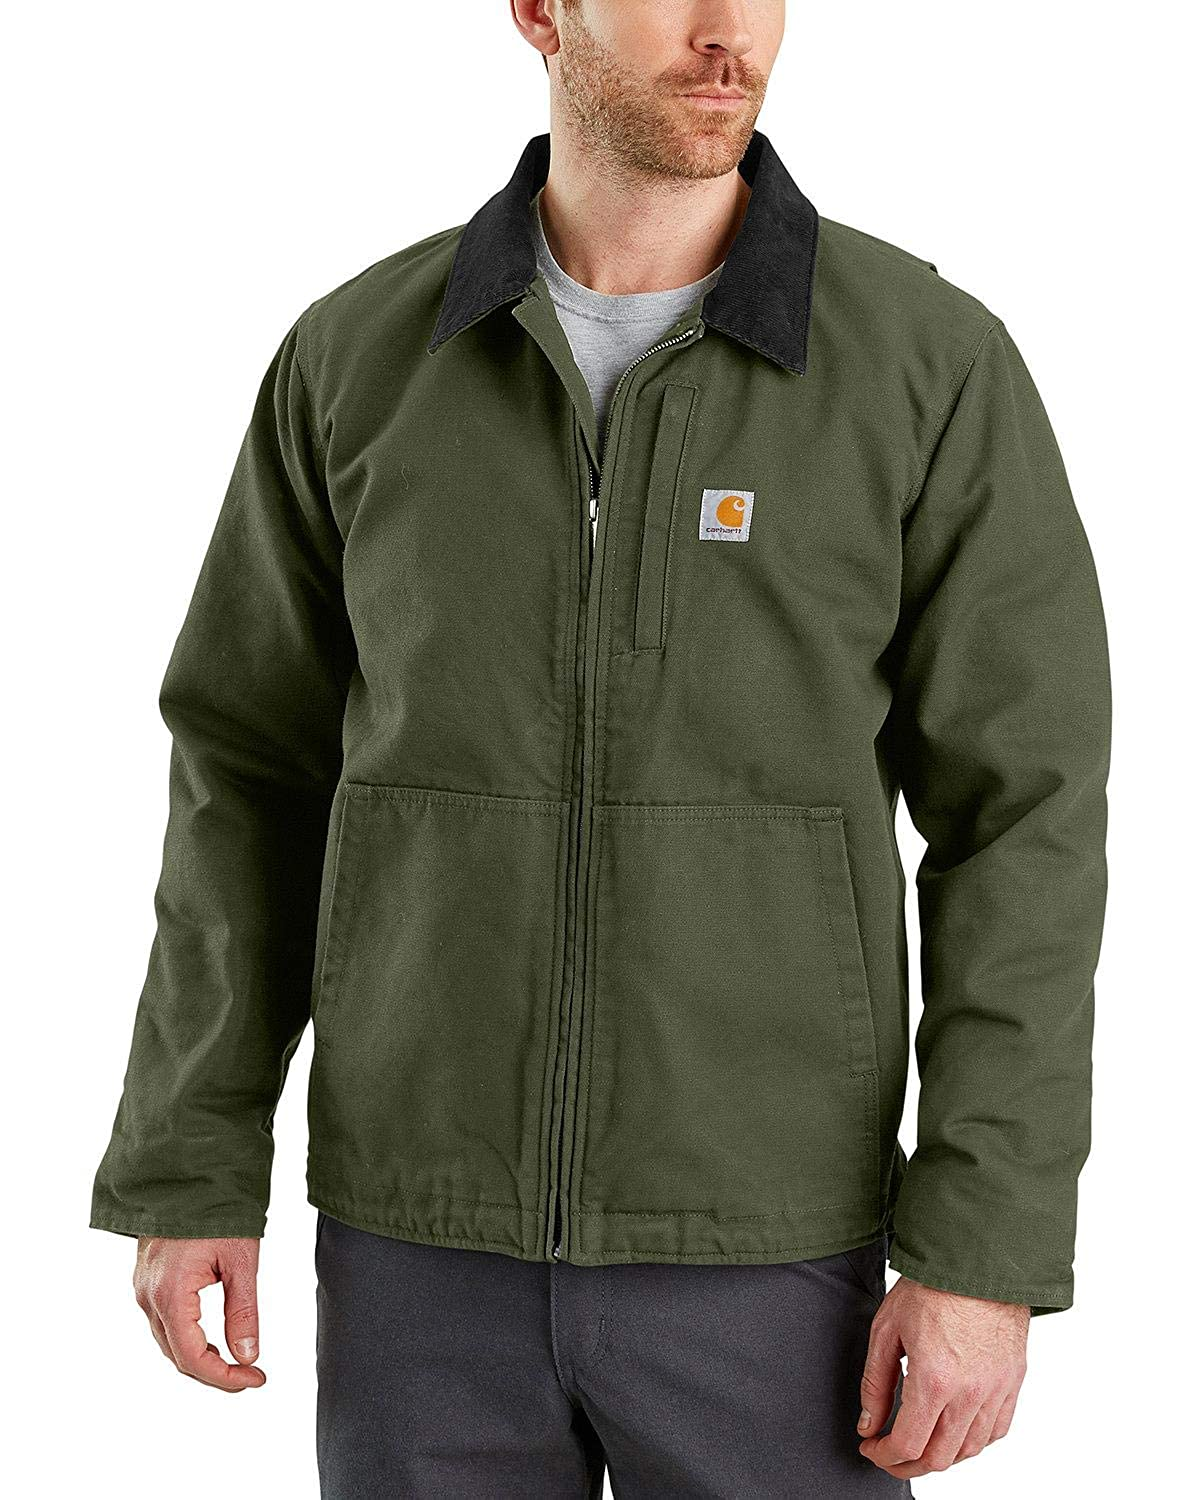 Carhartt Mens Full Swing Armstrong Jacket